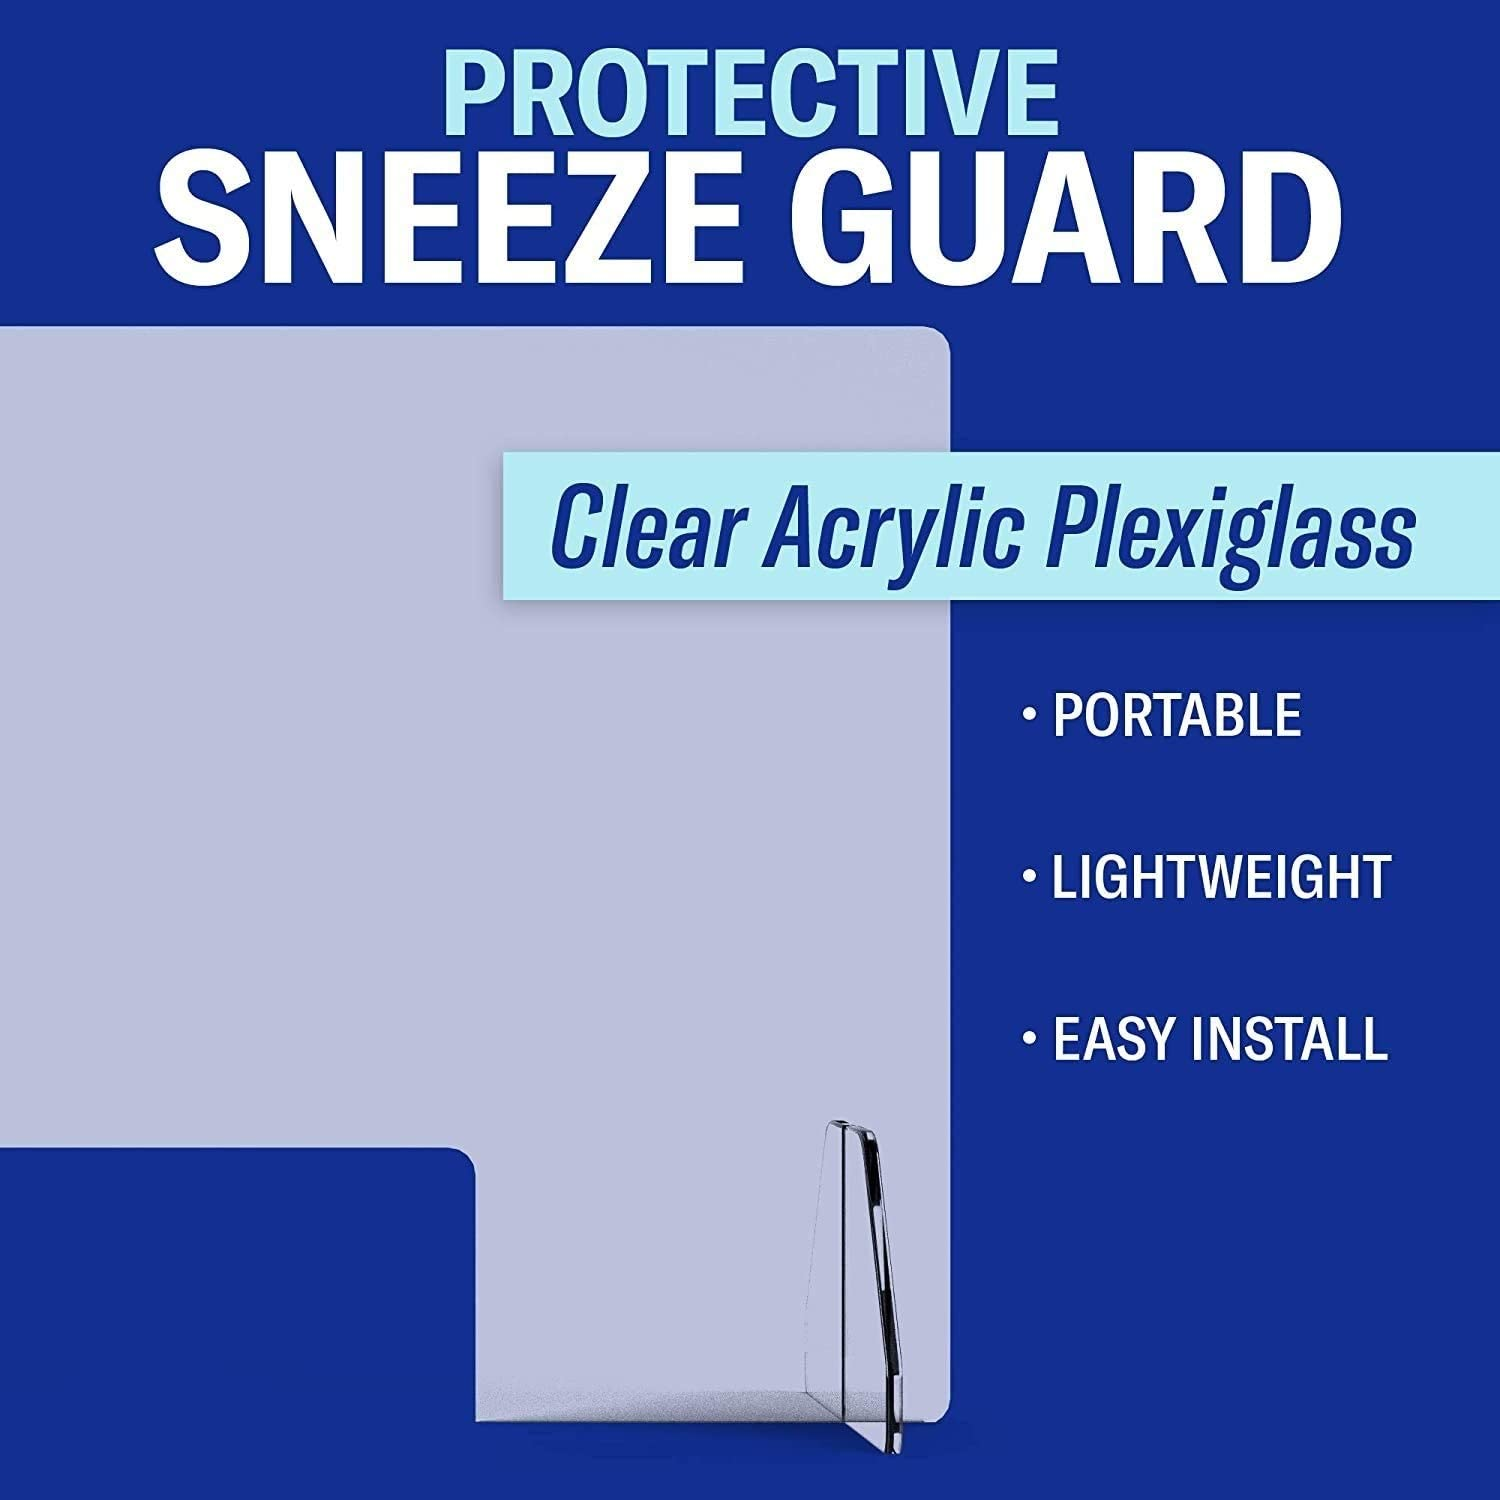 Sneeze Guard 12 16 18 Wide Protective Freestanding Shield Guards Against Sneezing and Coughing for Counters with Transaction Window for Offices and Stores Size : 16 w x 24 h